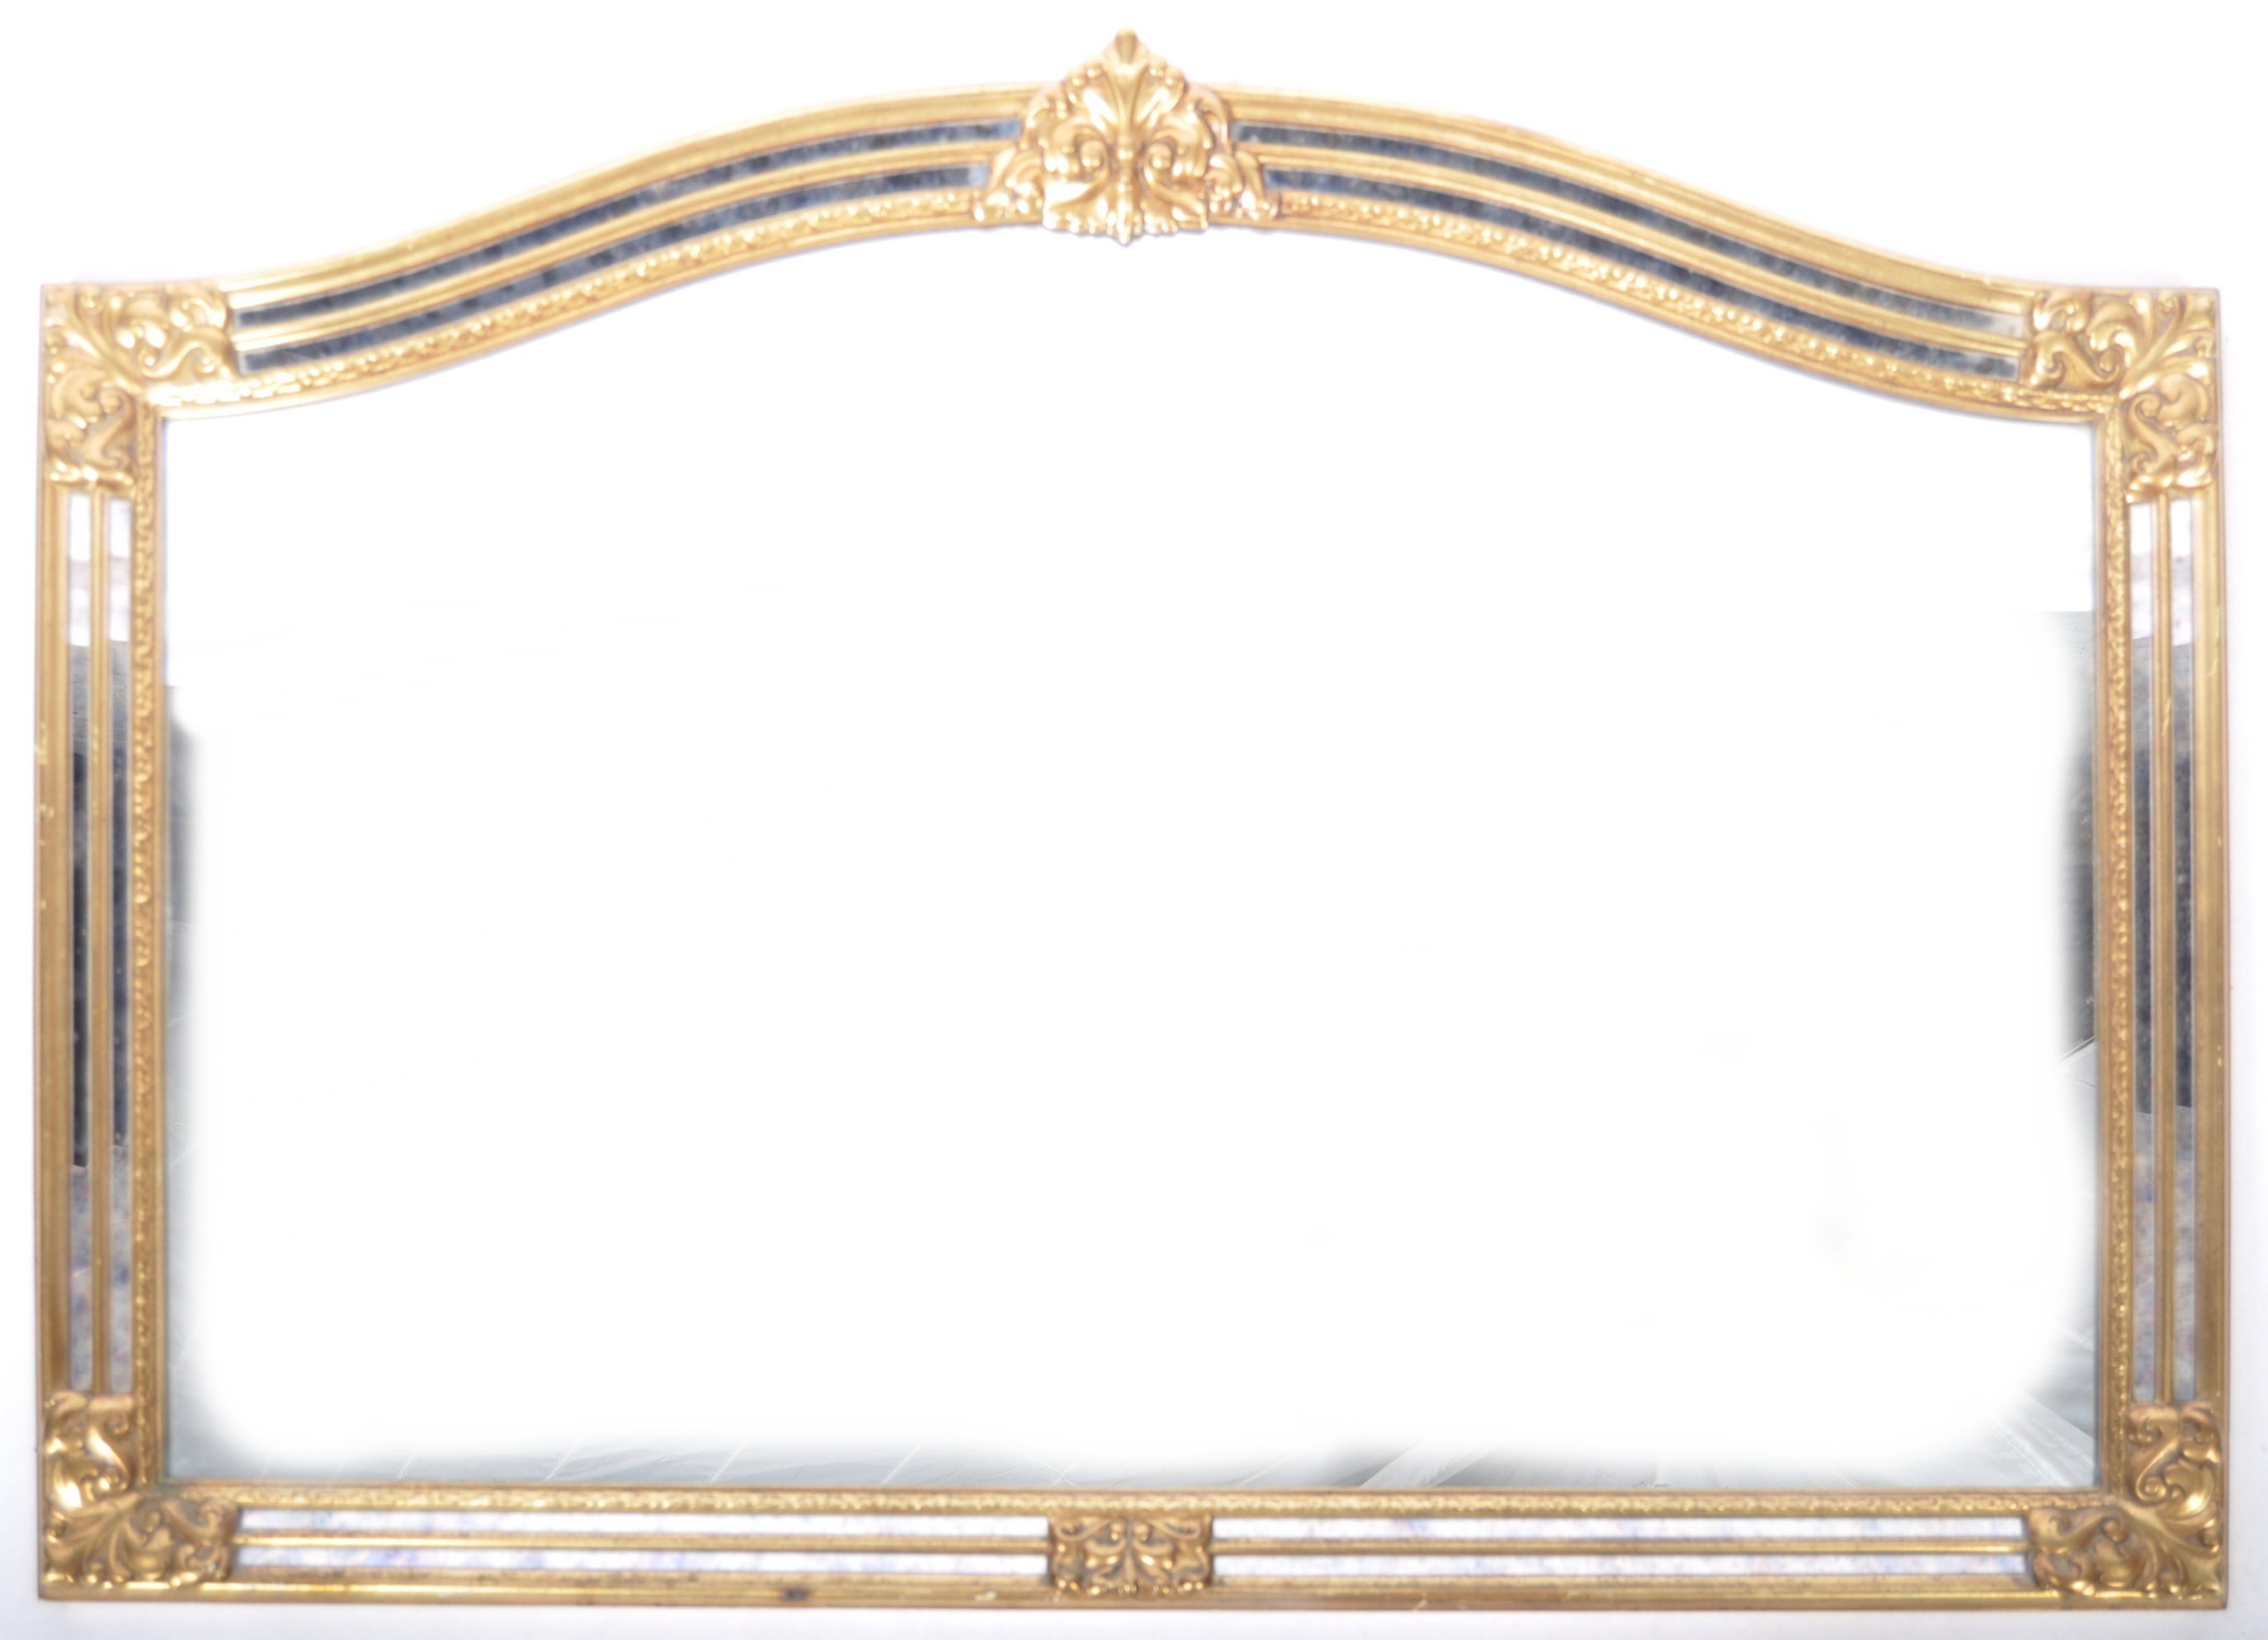 CONTEMPORARY ANTIQUE STYLE GILT FRAMED WALL HANGING MIRROR